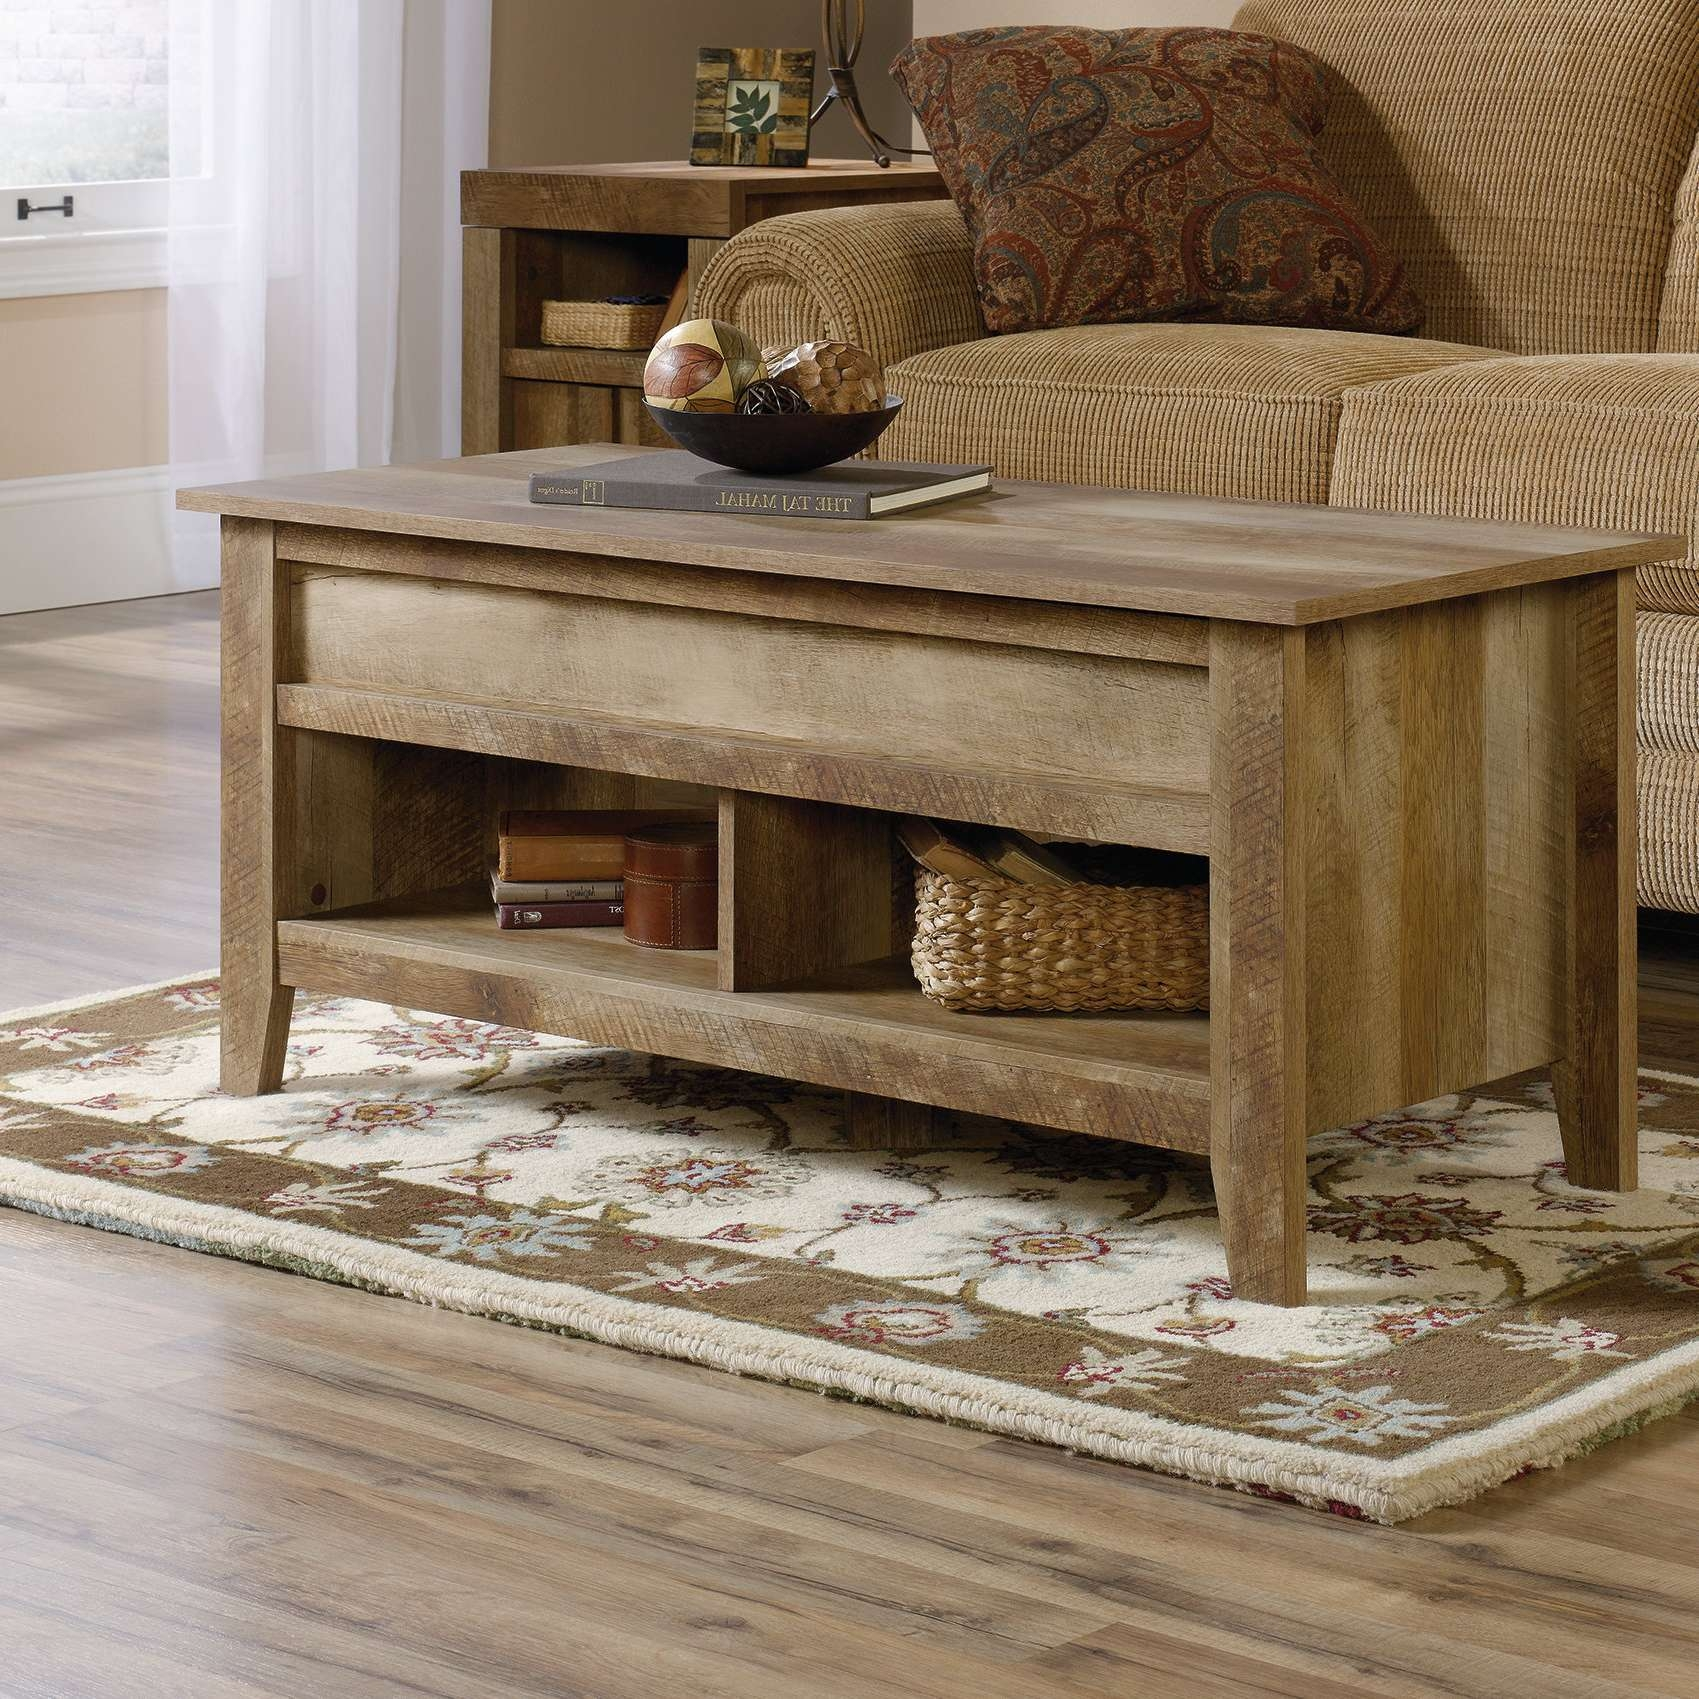 Wayfair Inside Popular Raisable Coffee Tables (View 18 of 20)